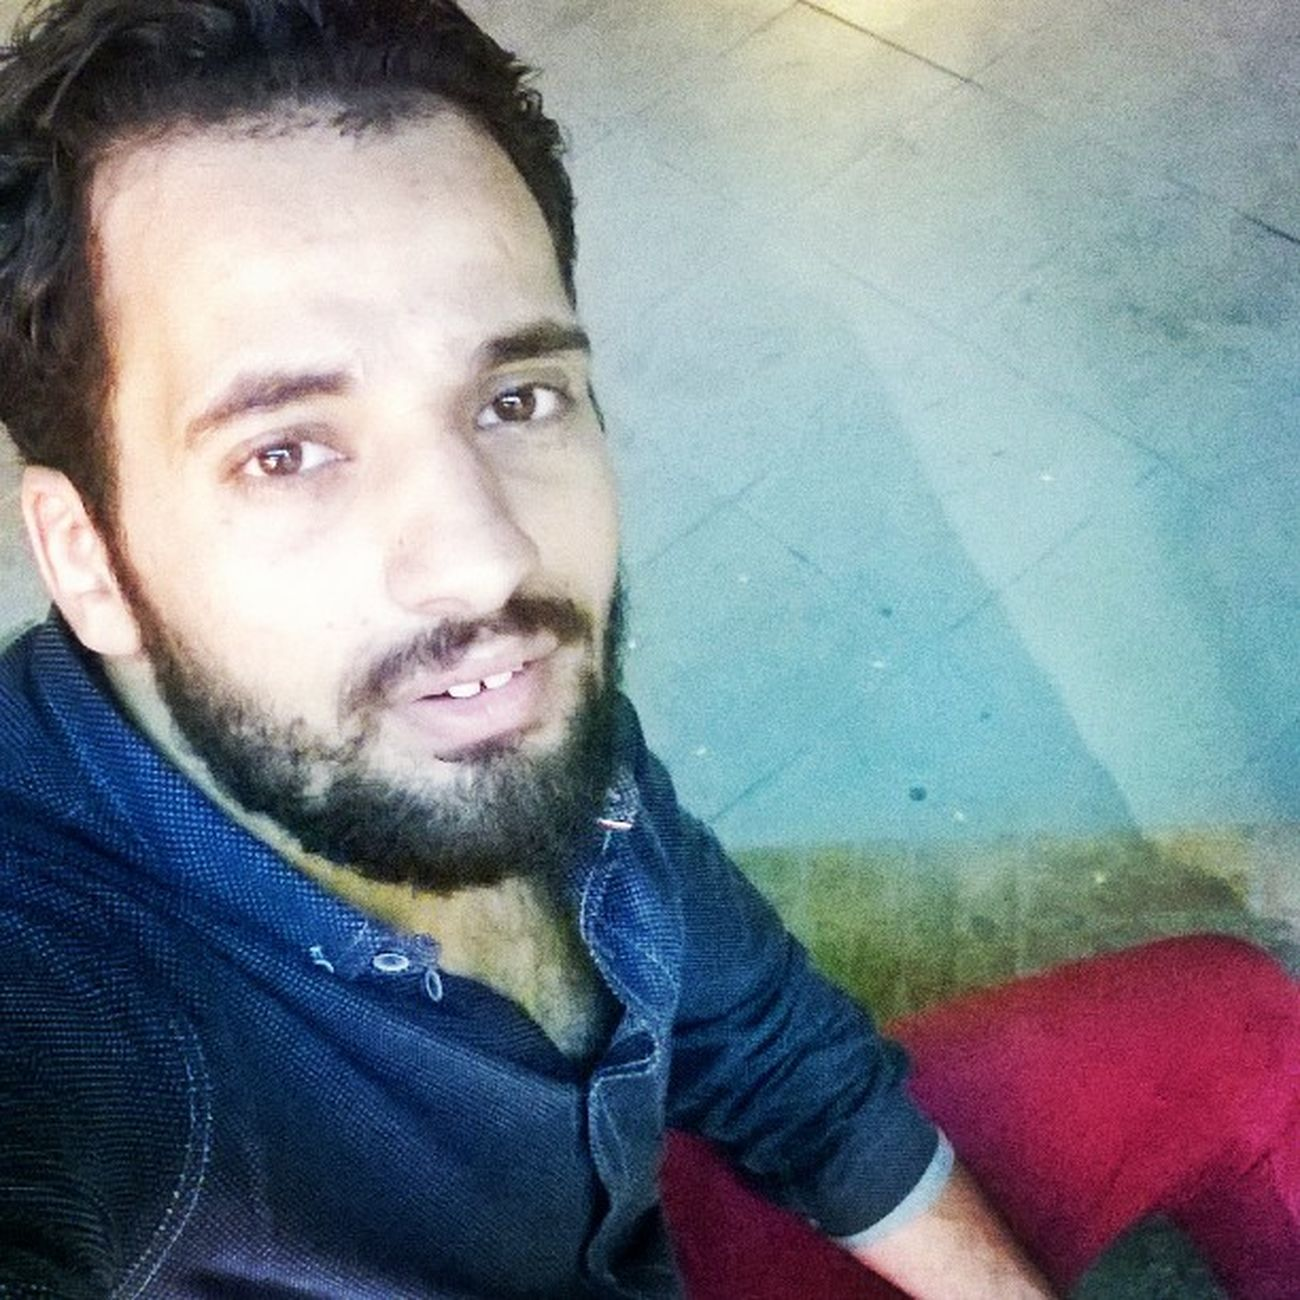 Newselfie Gsp Gohar Abnoudi Classico Mamdo7beh Lovely2Days